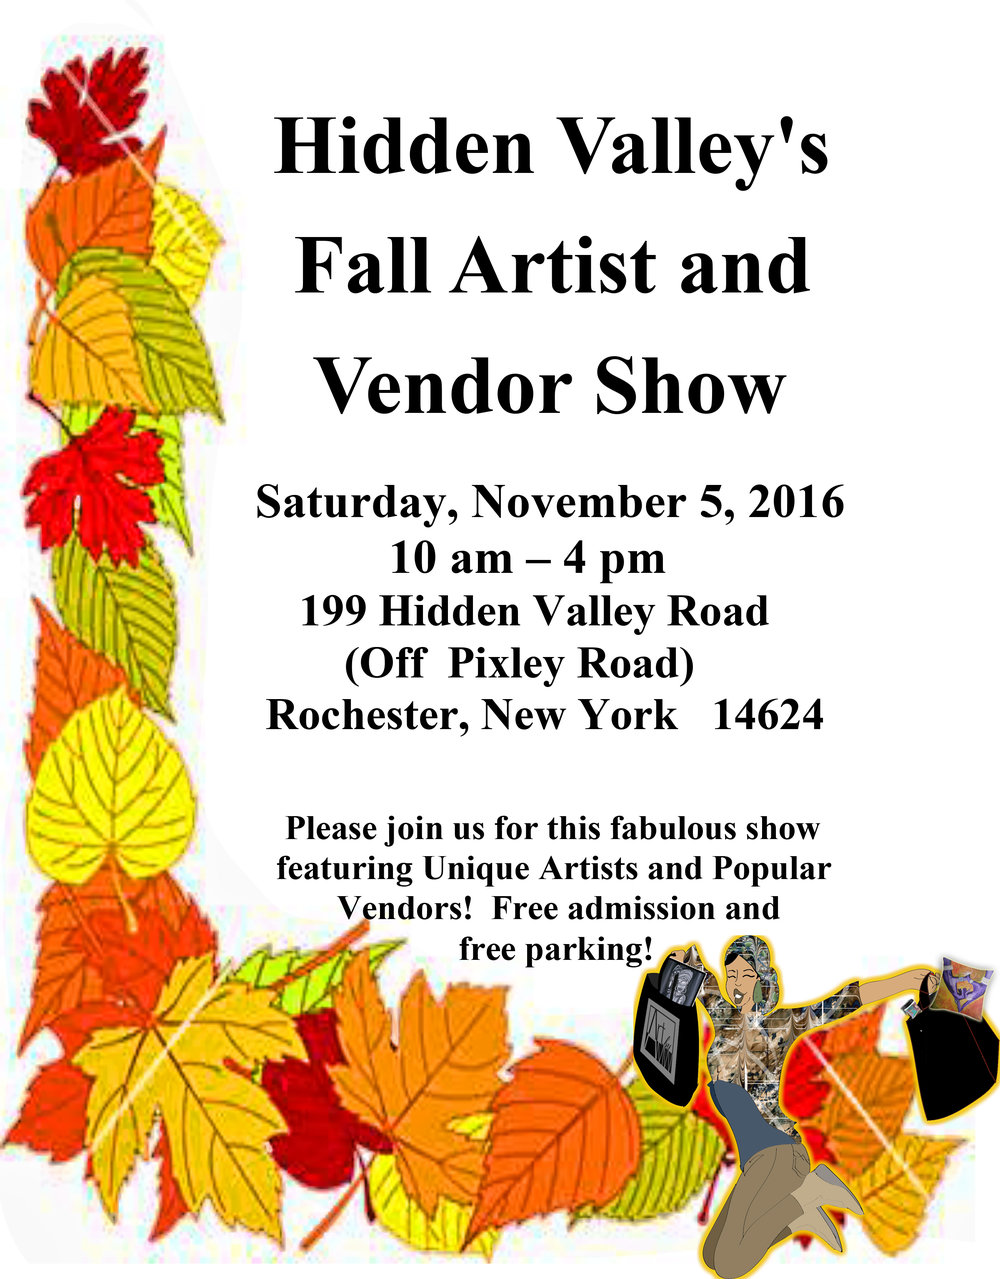 hidden valley event flyer adjusted.jpg